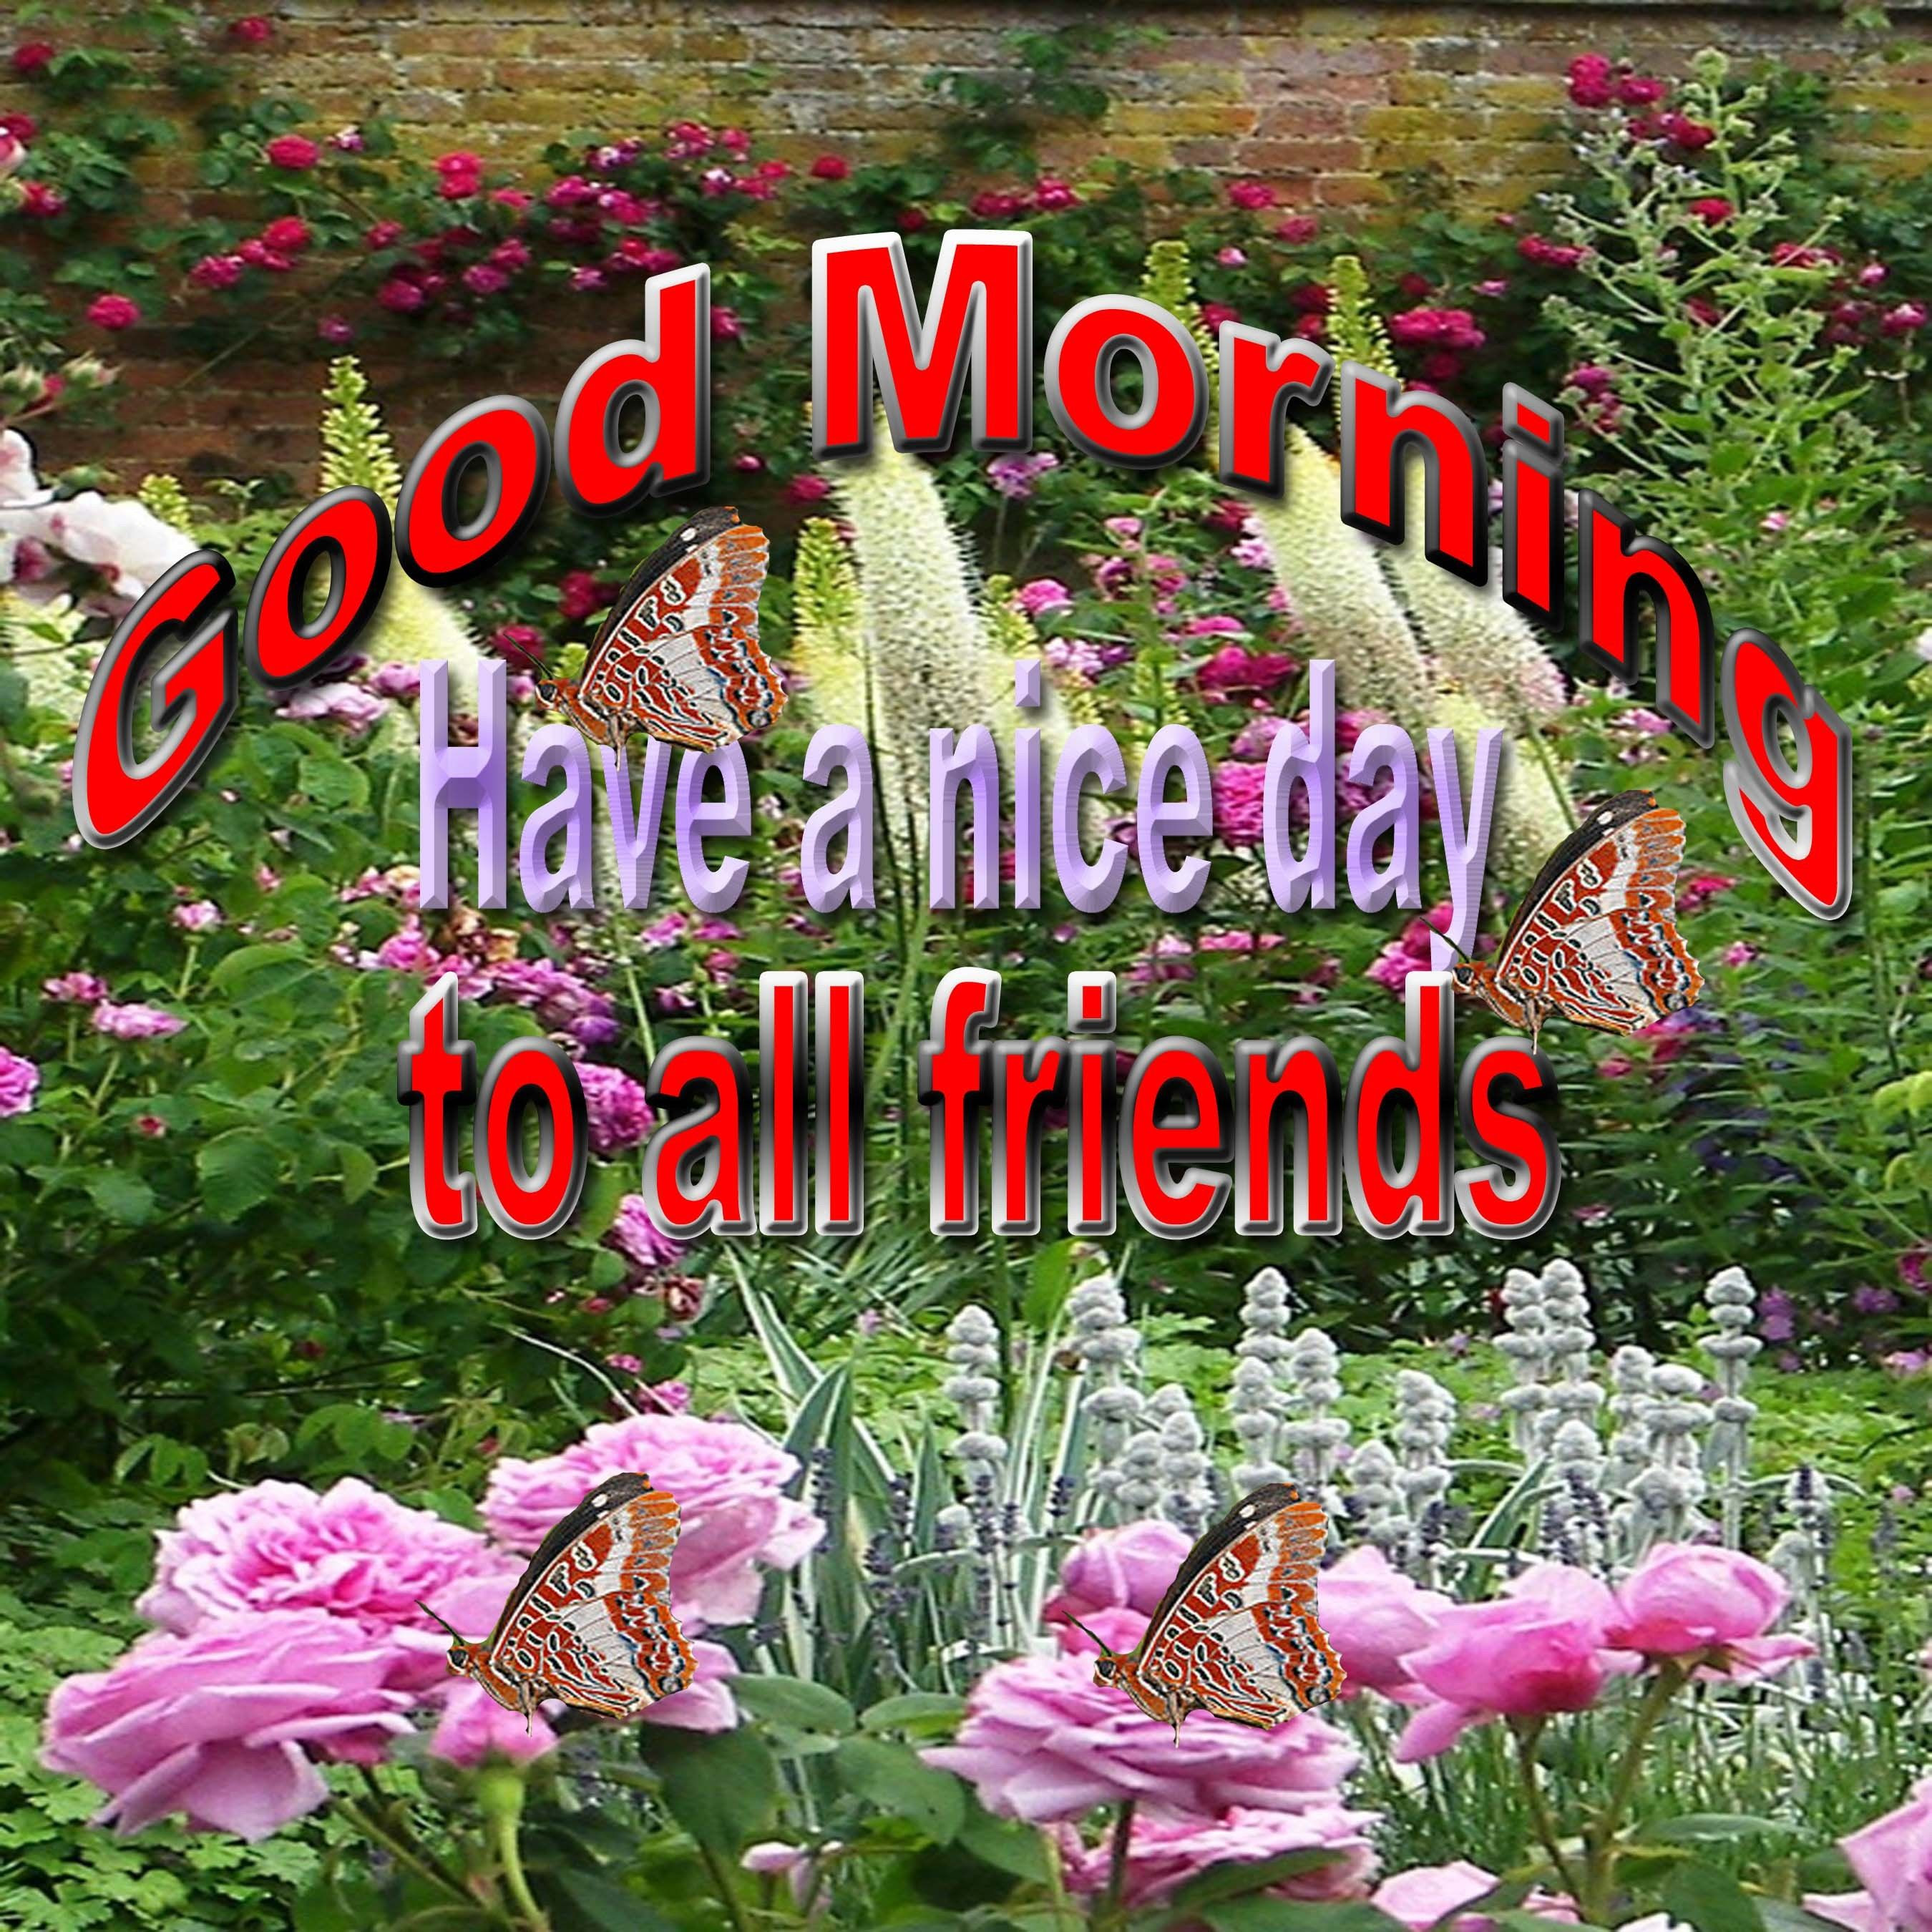 Good Morning Have A Nice Day To All Friends Pictures Photos And